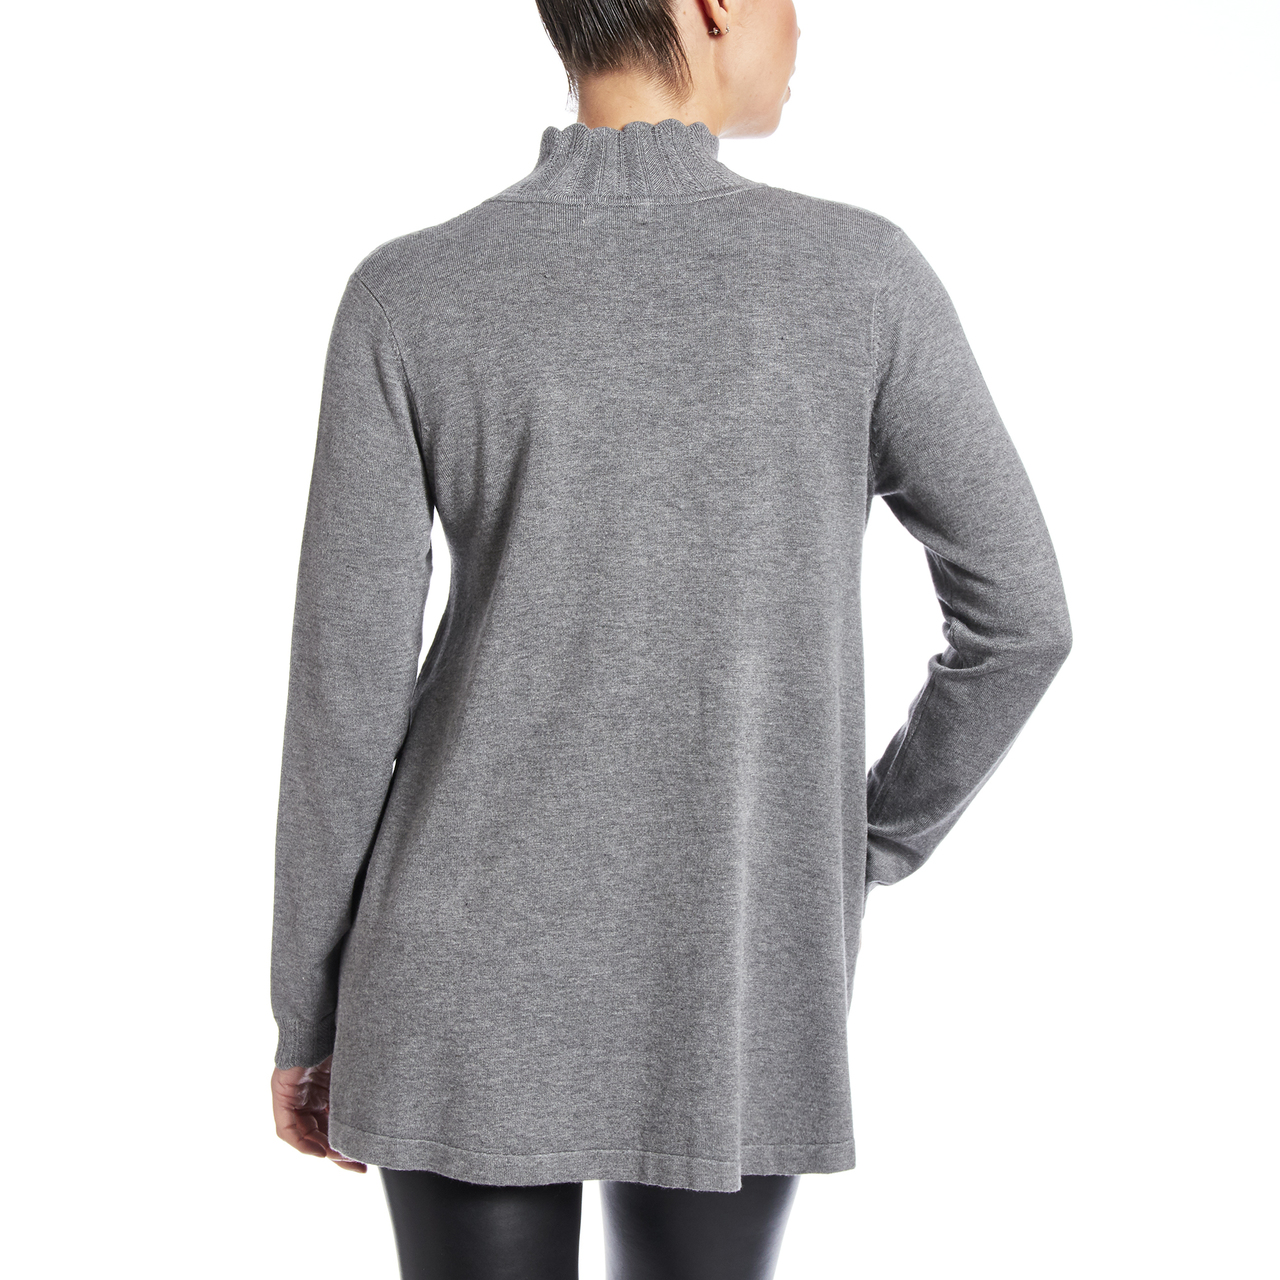 Pointelle Tunic In Heather Grey